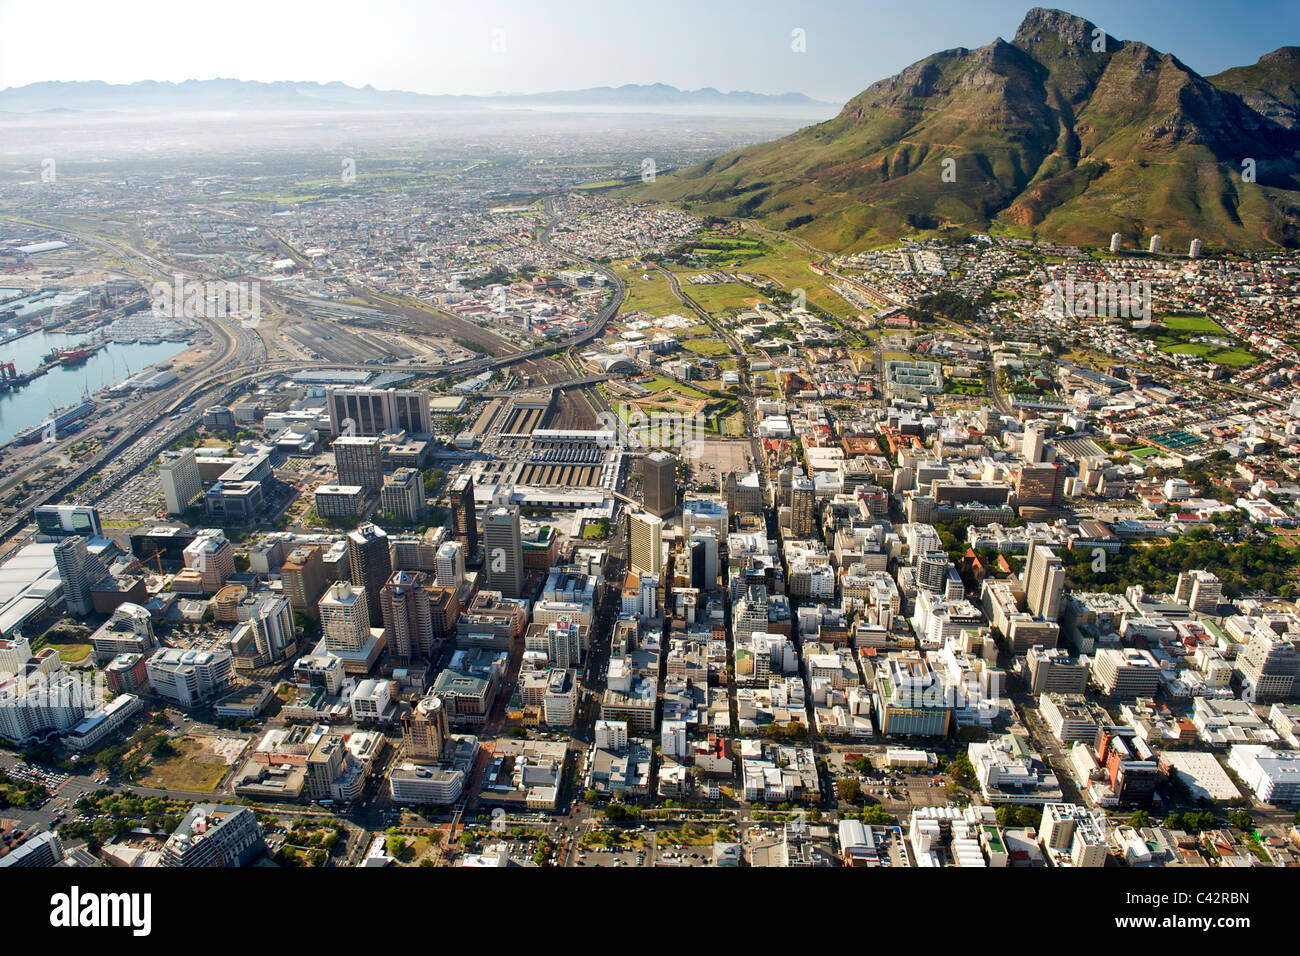 Aerial view of the buildings of the CBD in Cape Town, South Africa. - Stock Image